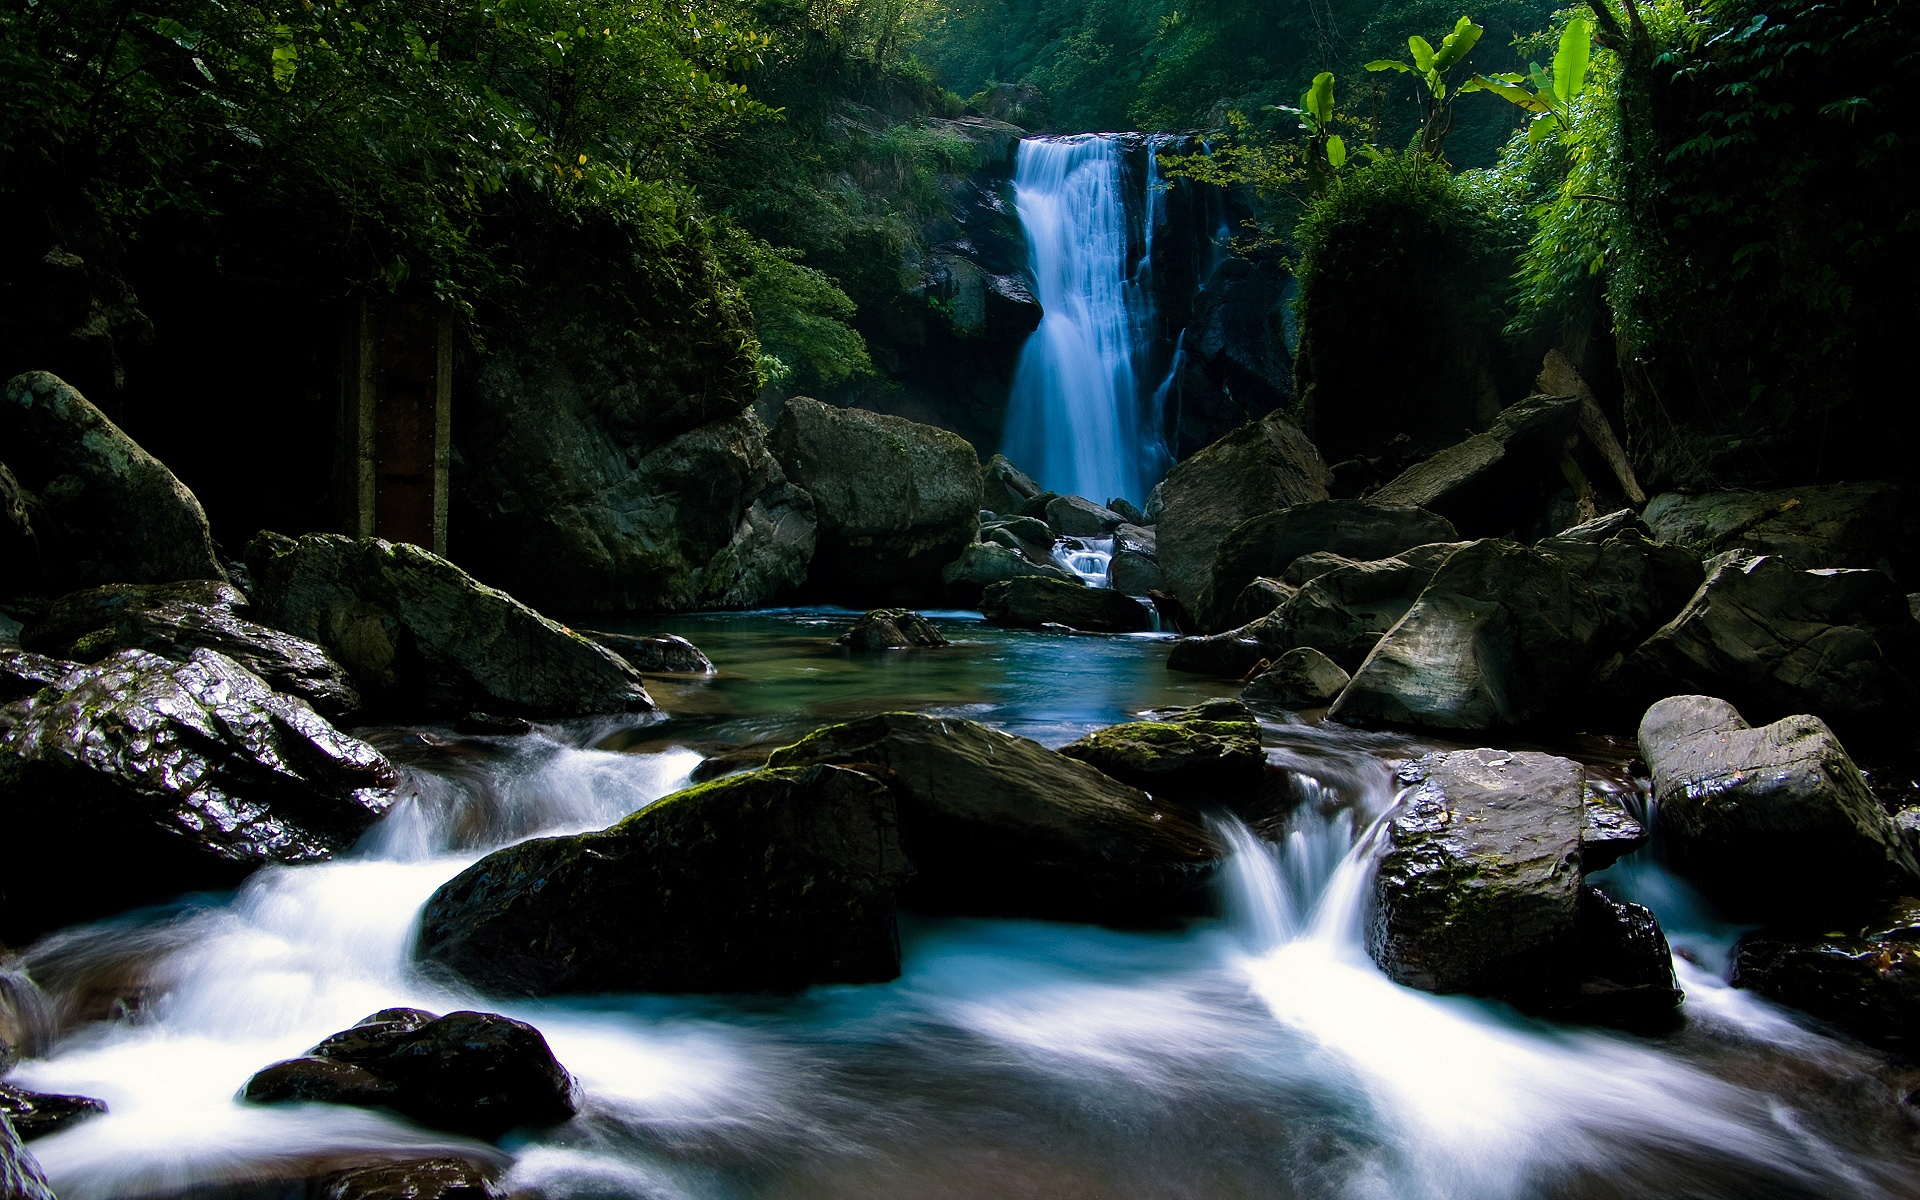 Hd Waterfall Backgrounds: 20 Gorgeous HD Waterfall Wallpapers